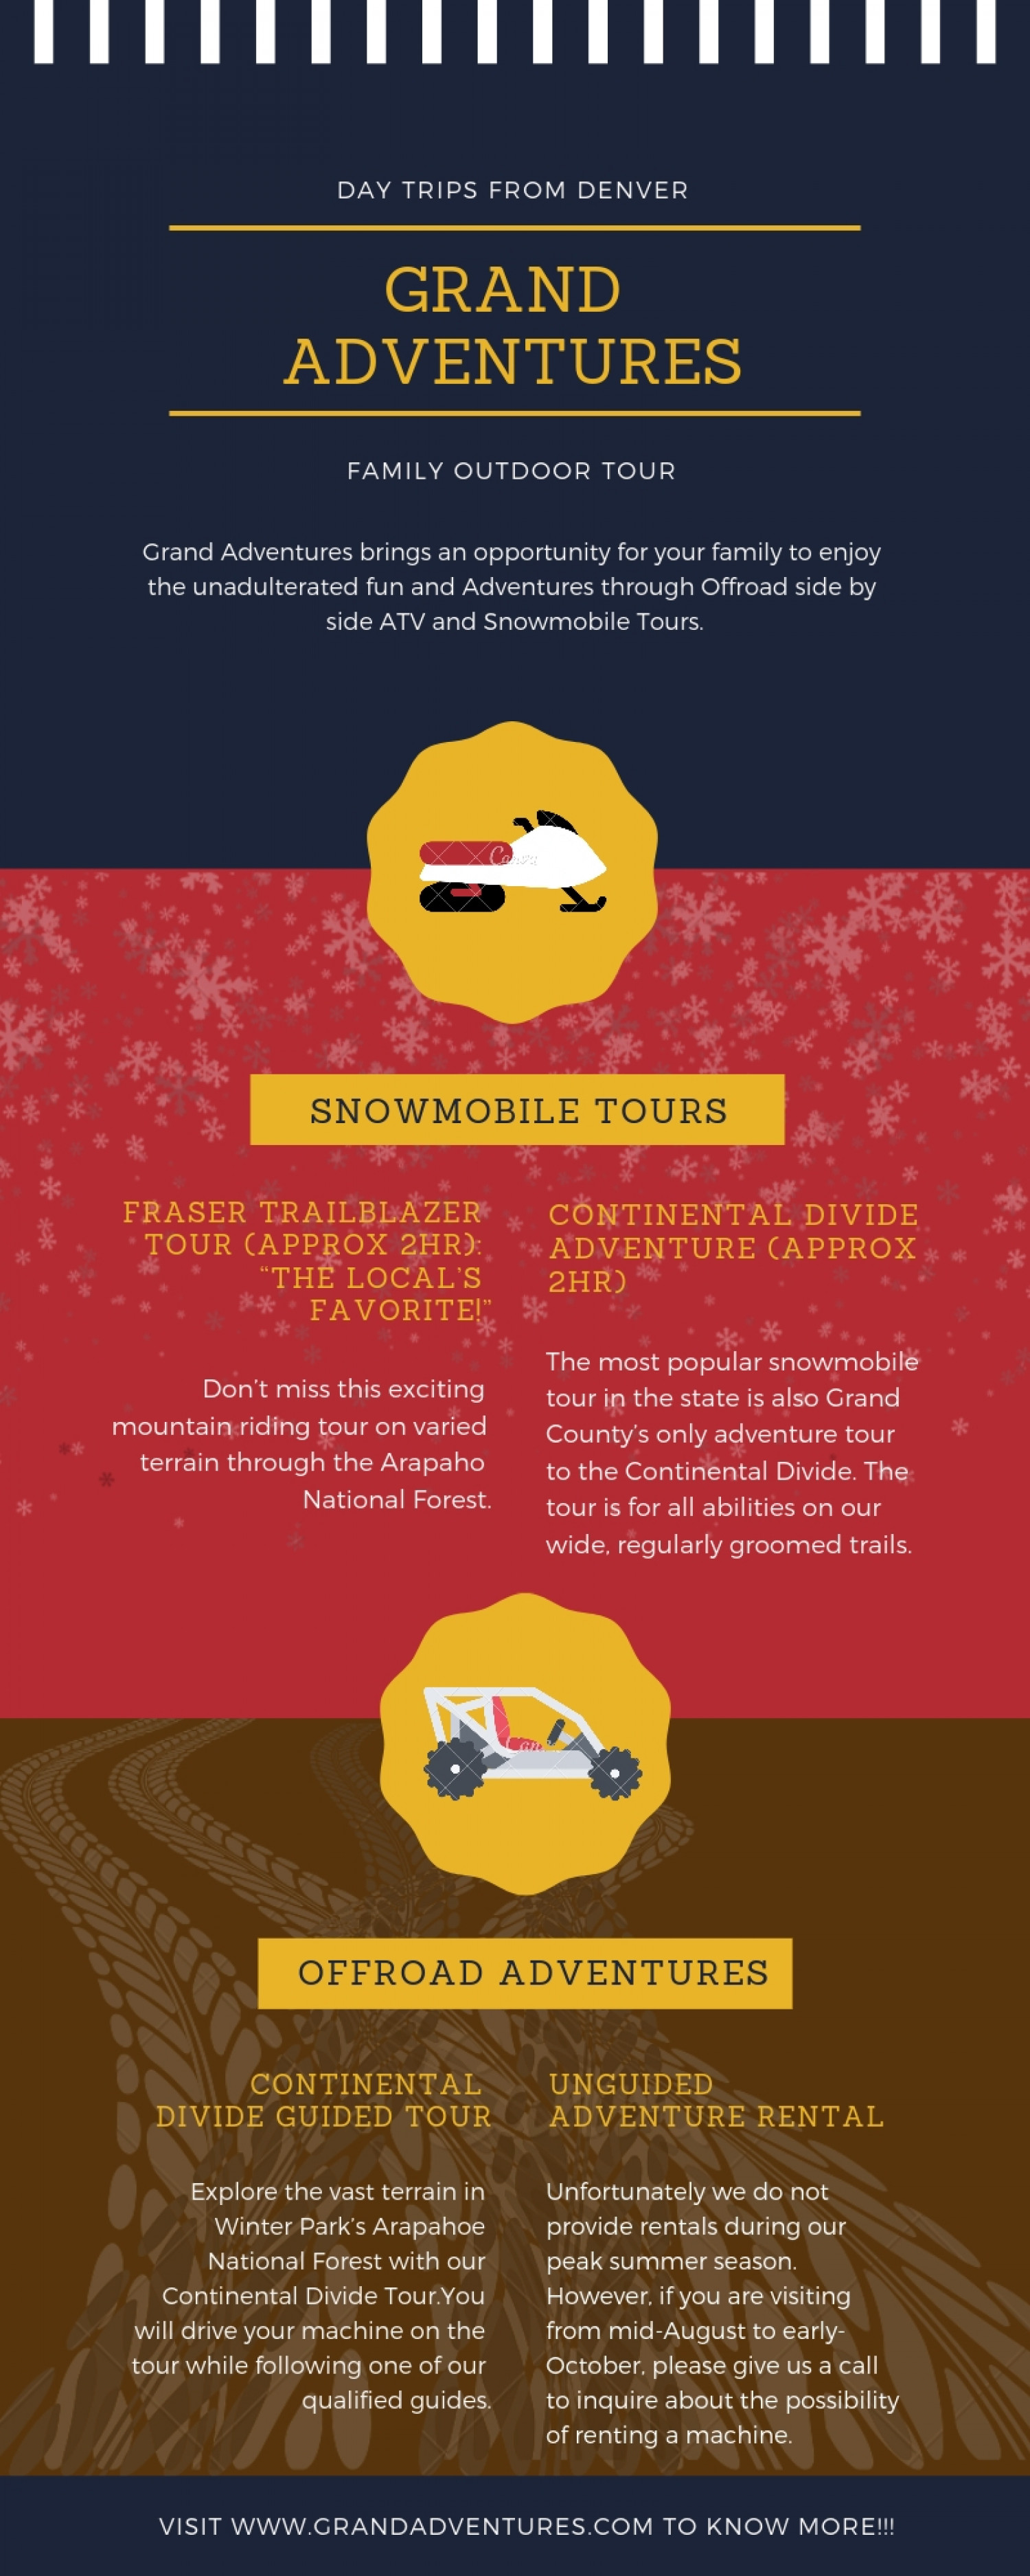 Adventure Unchained @ Grand Adventures. Infographic